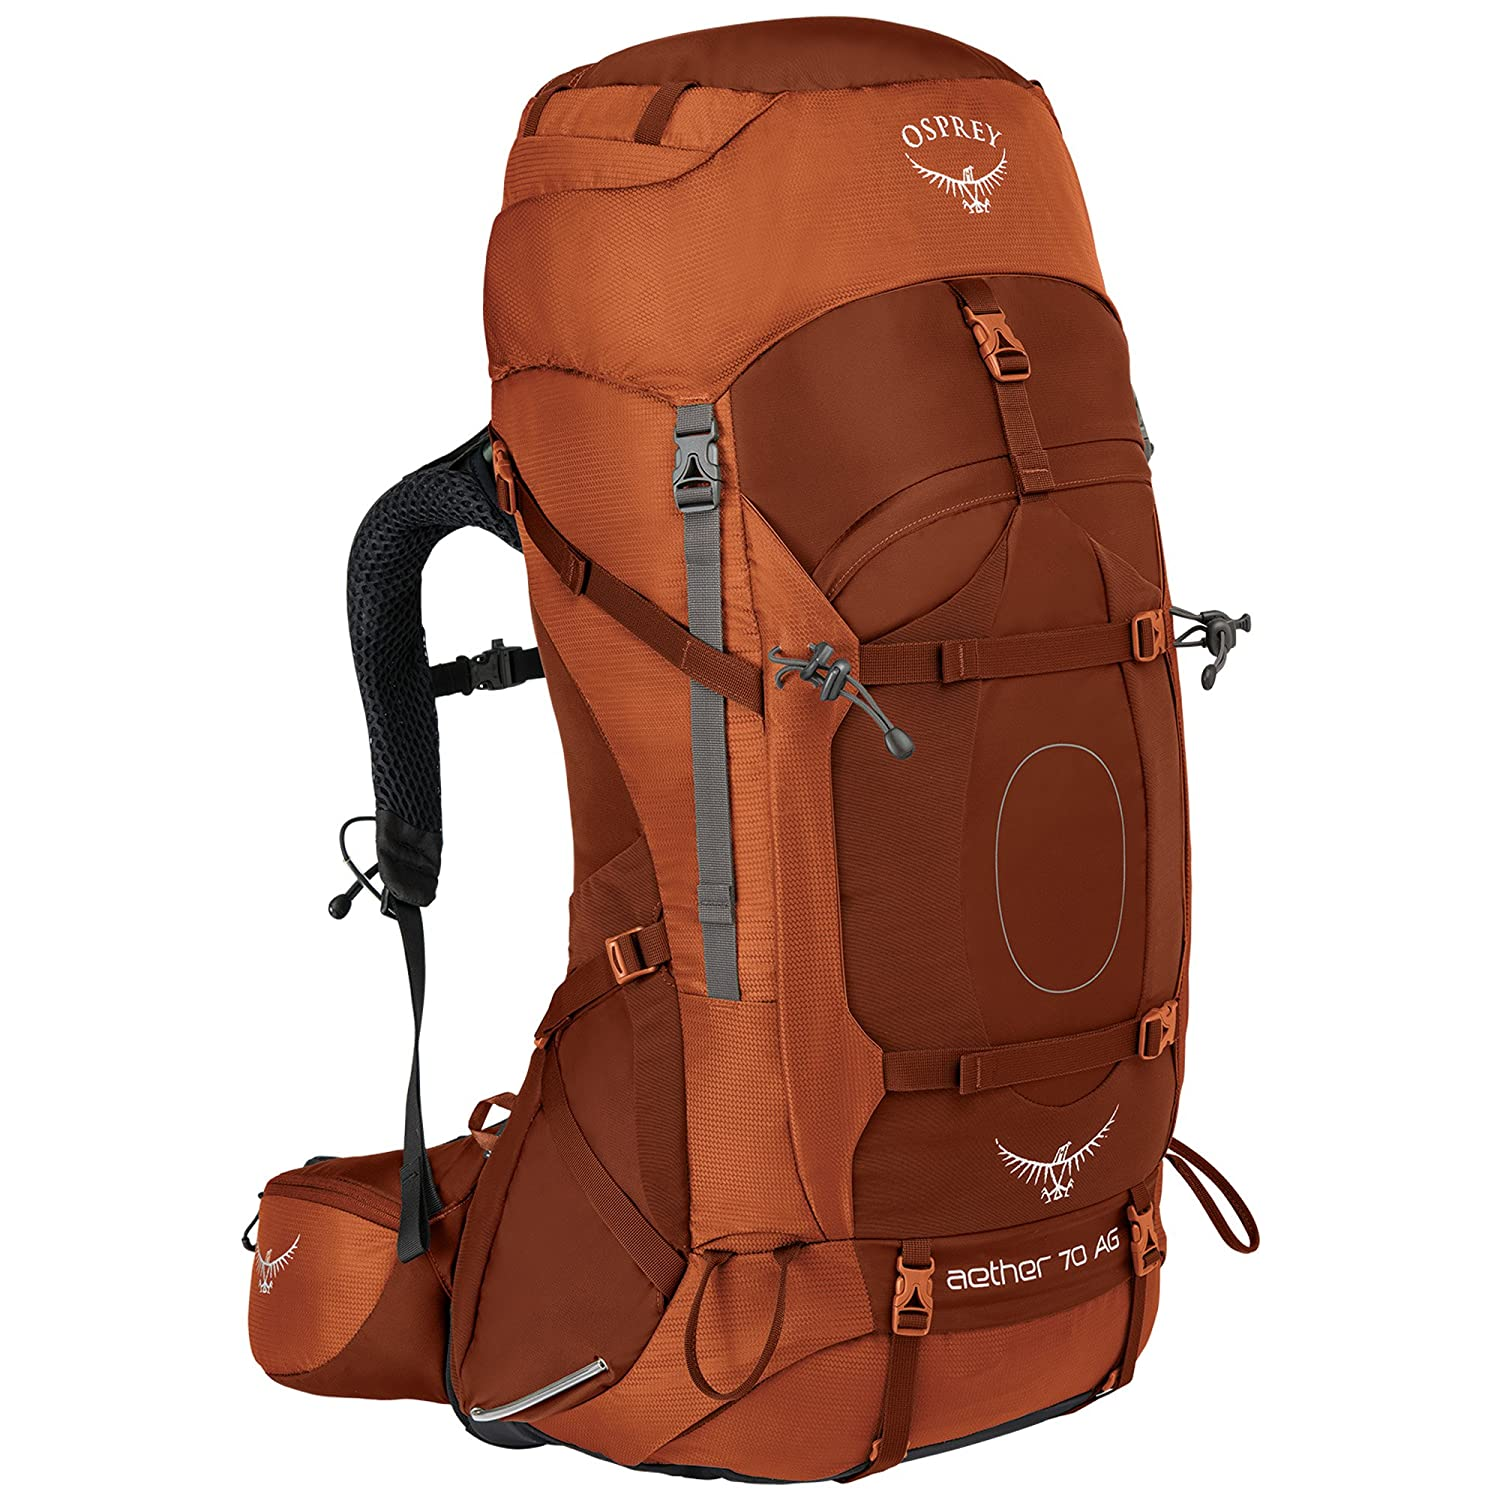 OSPREY(オスプレー) イーサーAG 70 OS50061 B076CKD2S1  OUTBACK ORANGE Small